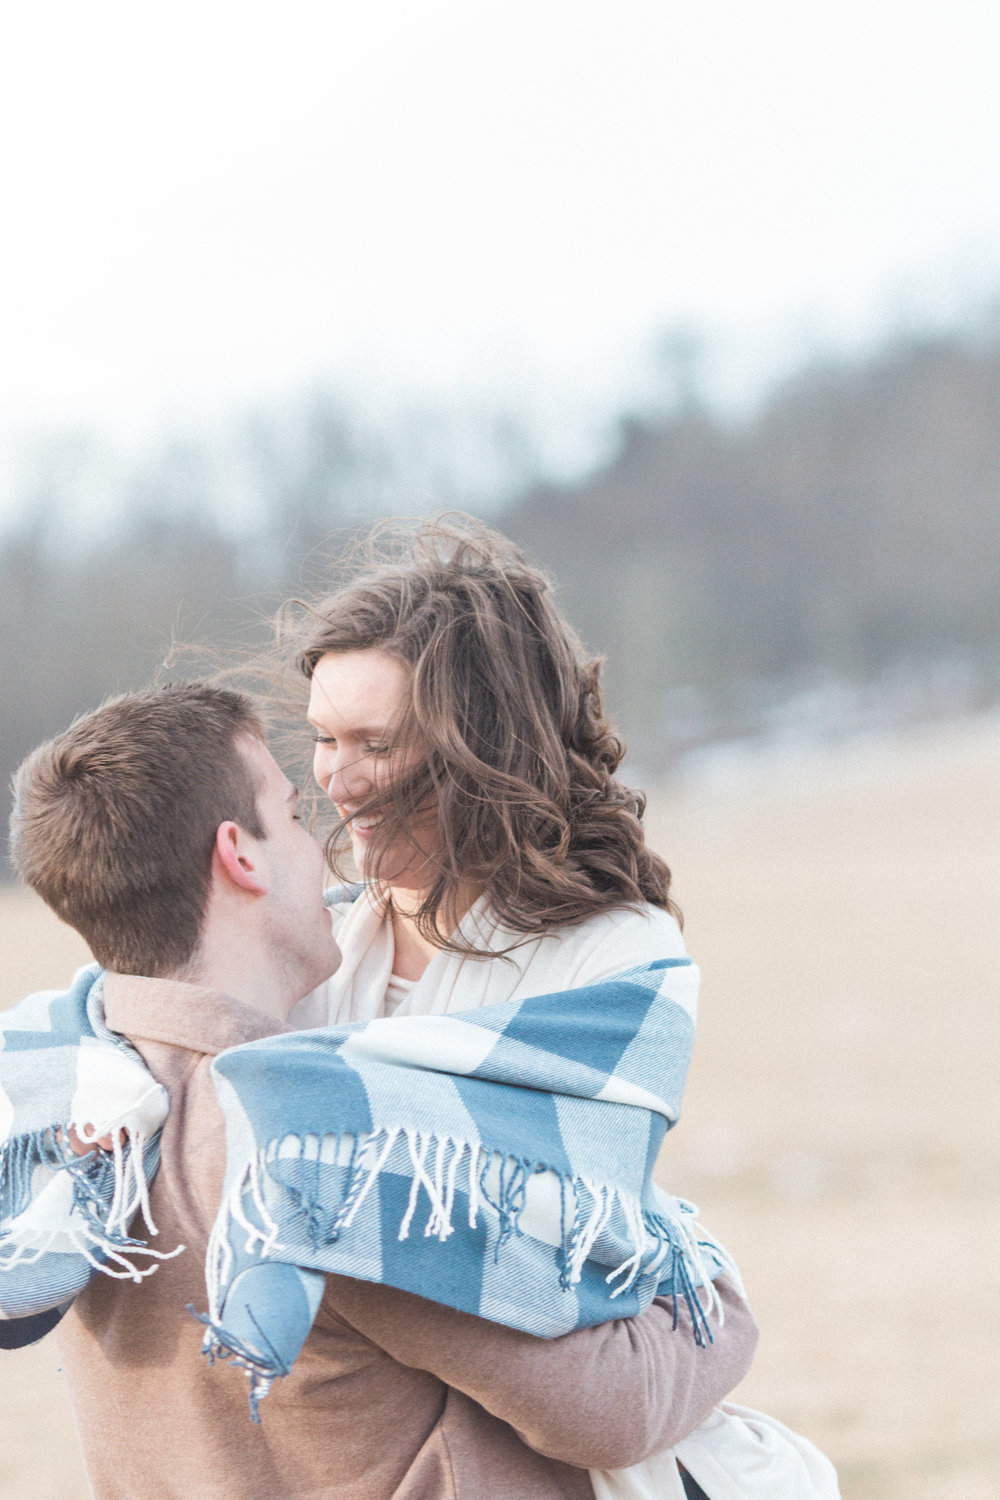 Abigail_Jill_Photography_Maryland_Engagement_Farm_Emily_Justin282.jpg